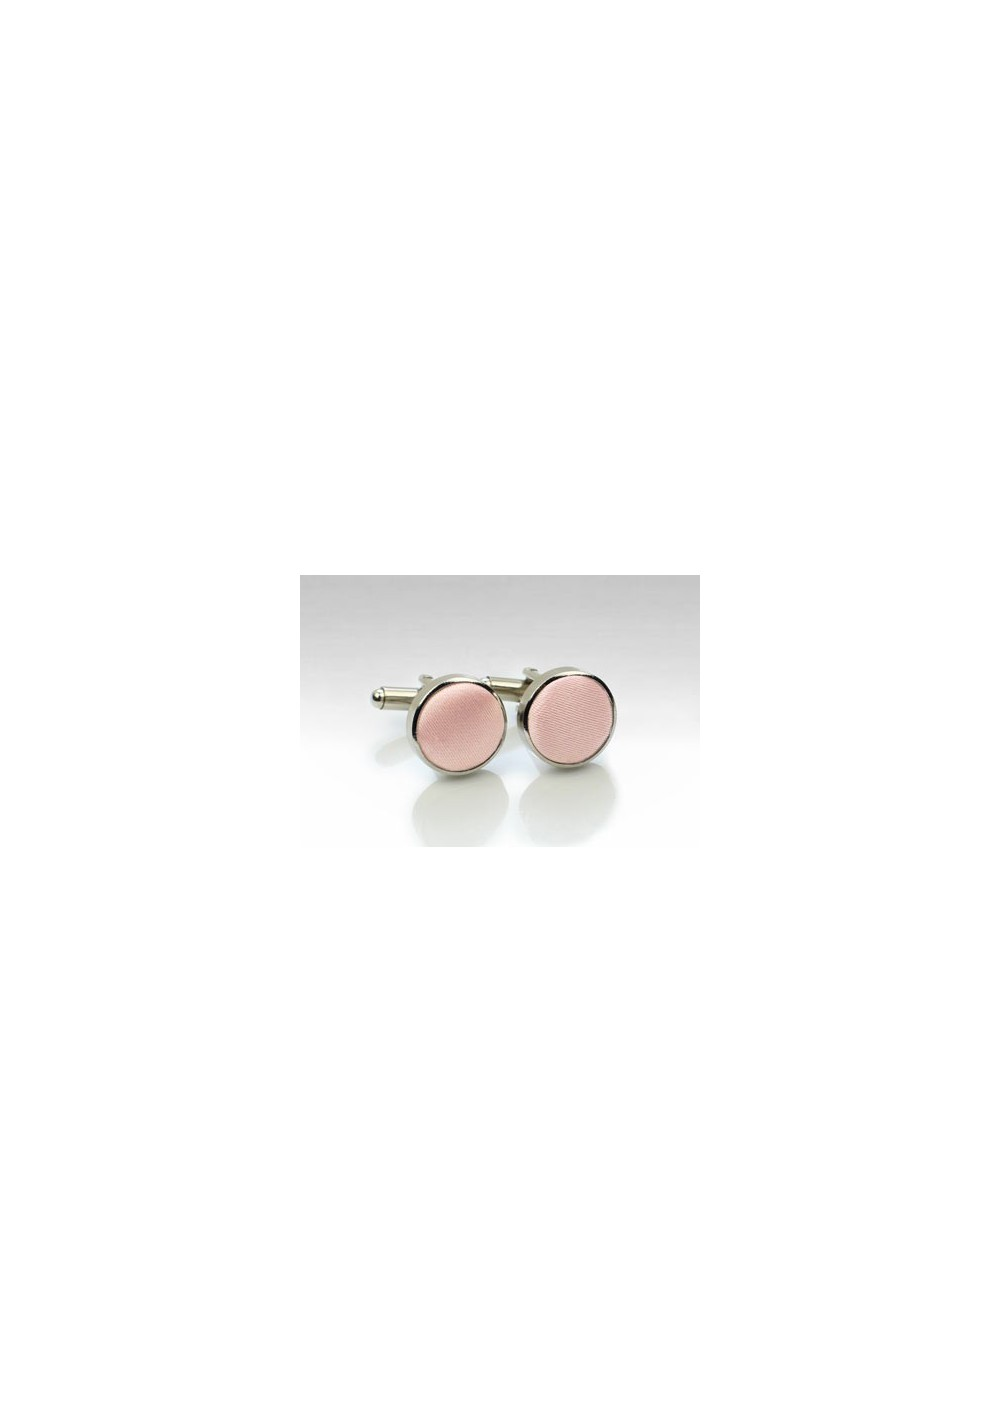 Peach Blush Cufflinks